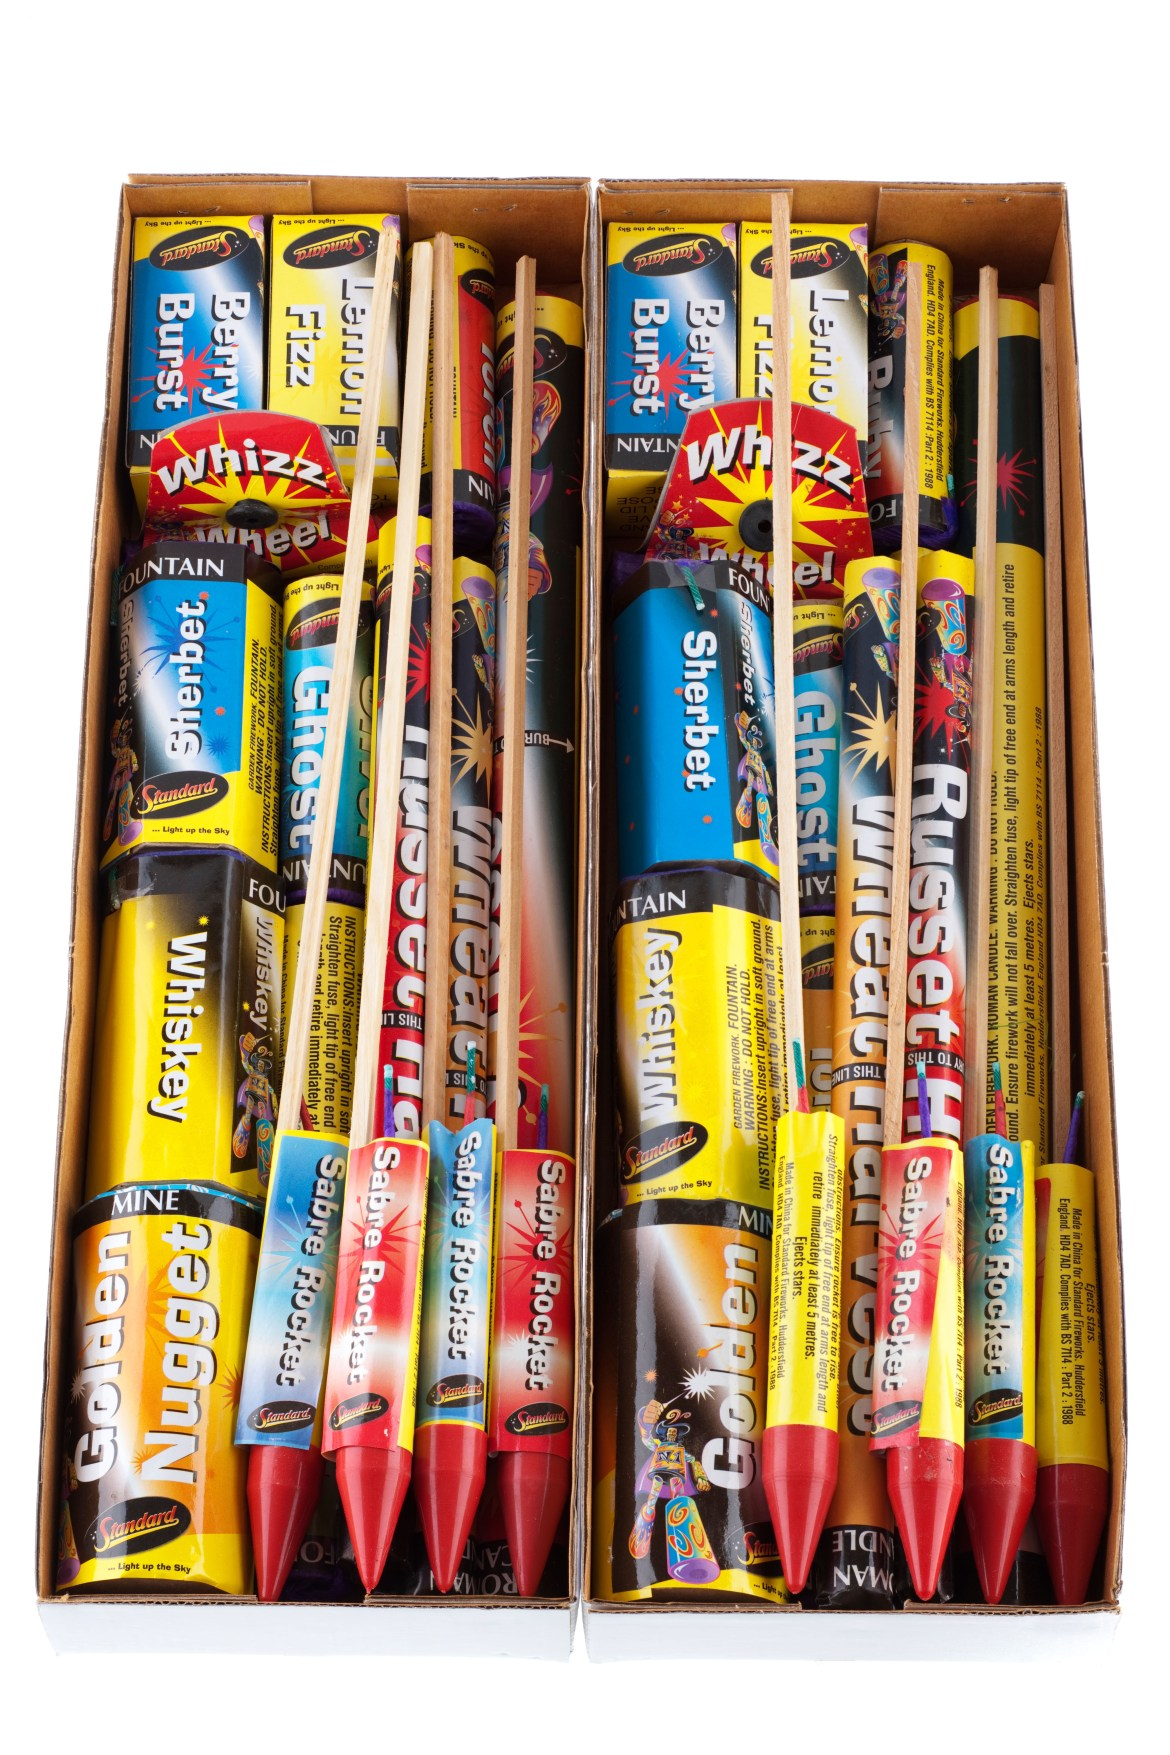 Cash in on deals for fireworks left over from Bonfire Night